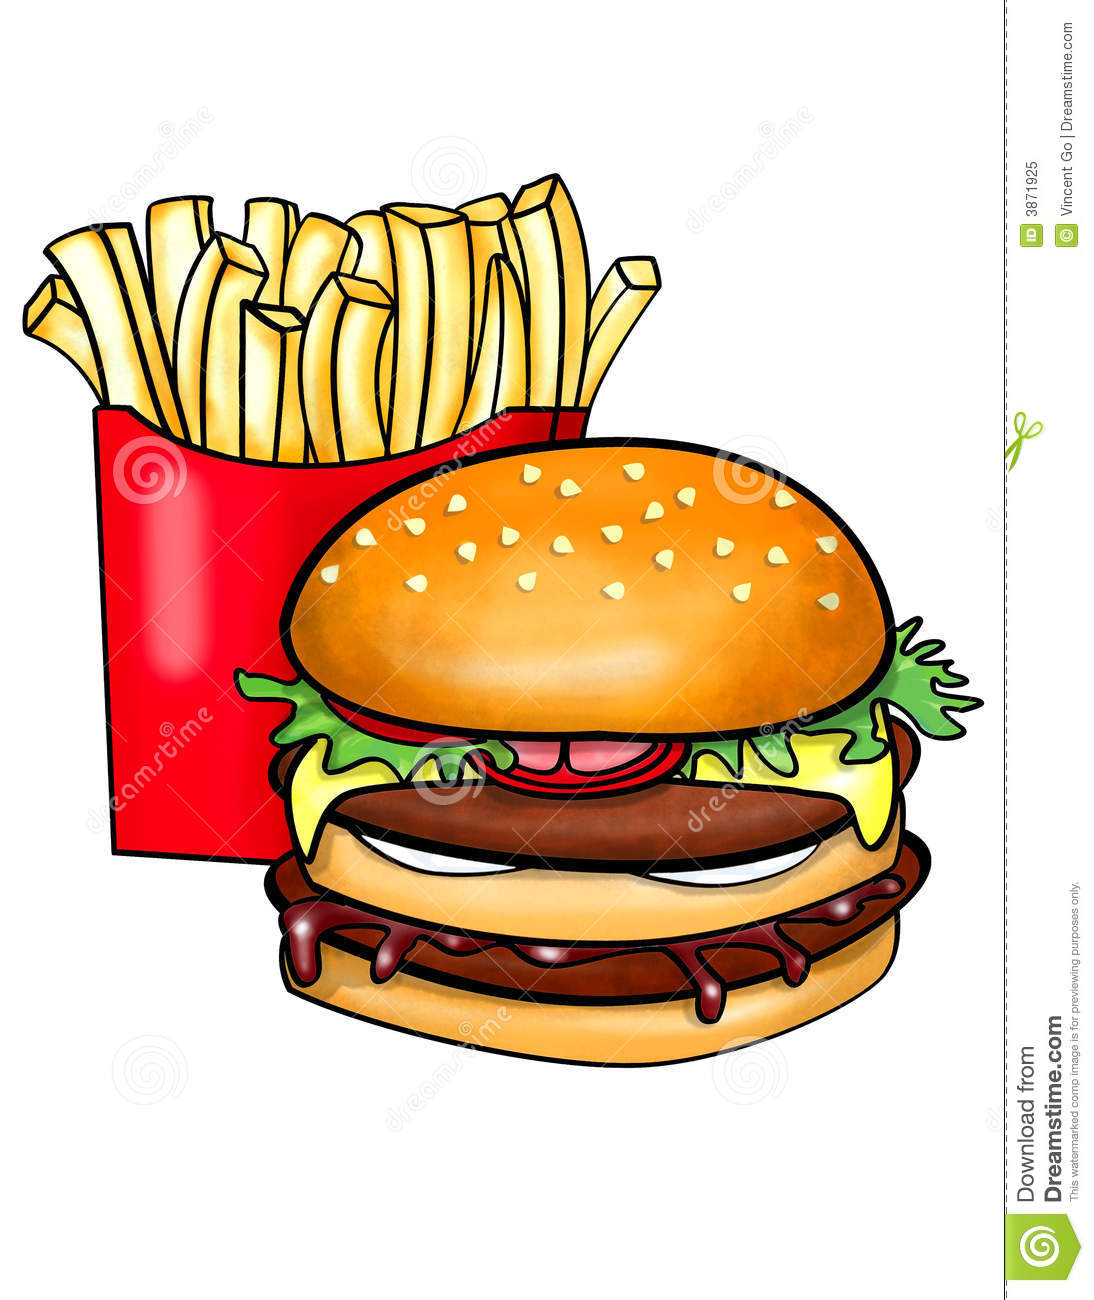 Burger and chips clipart images gallery for Free Download.